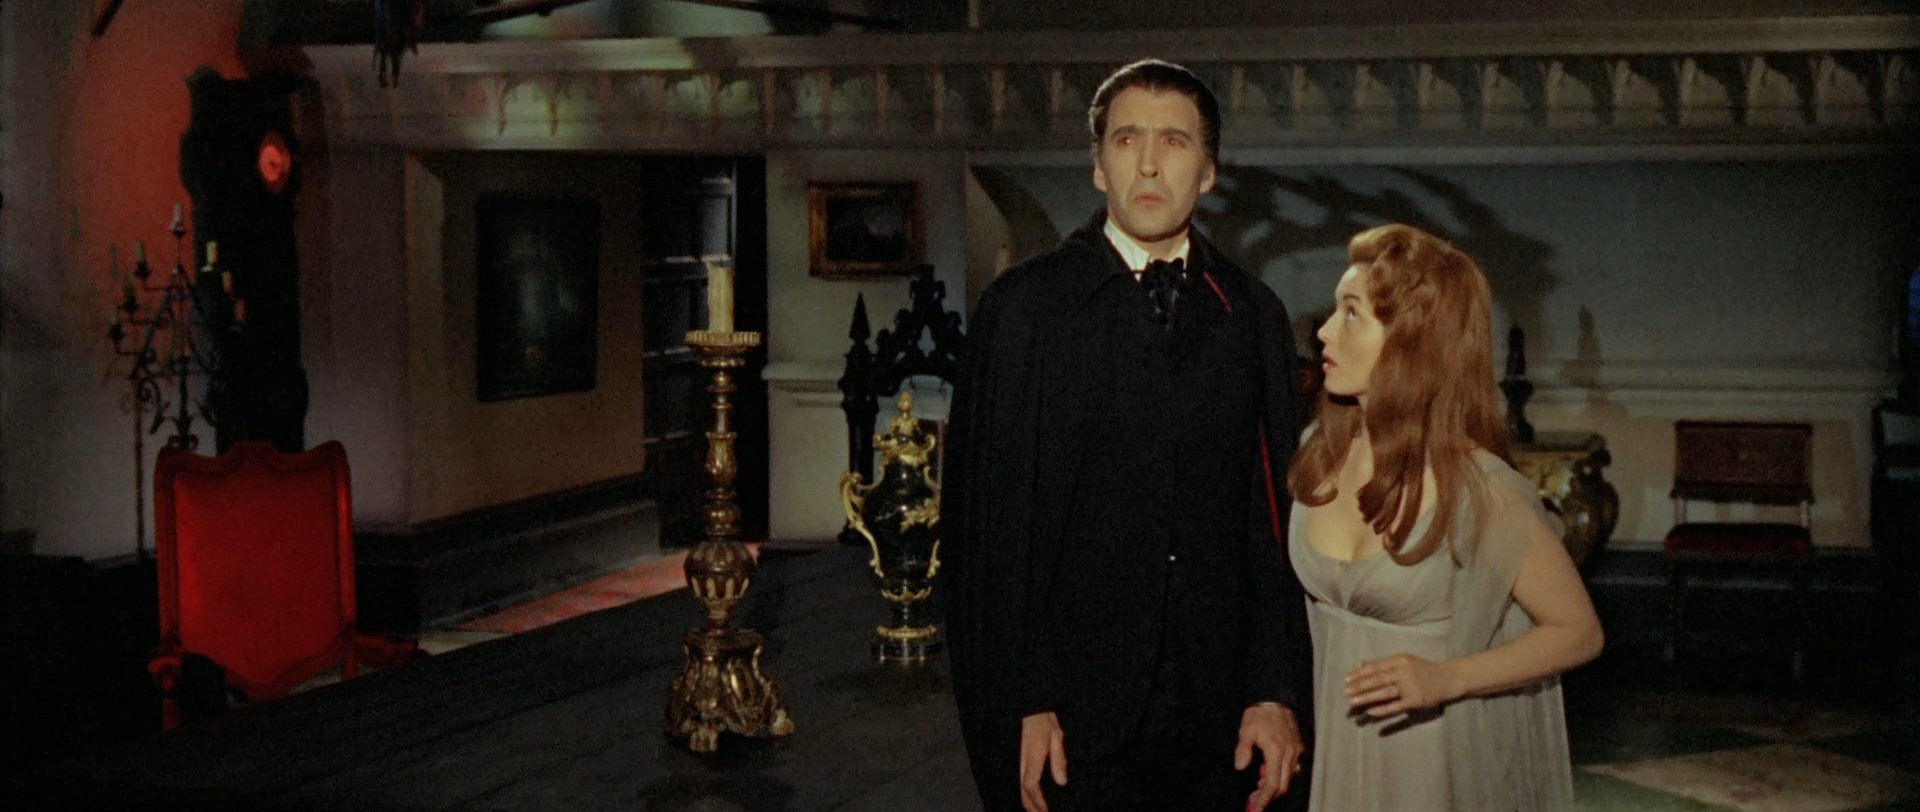 Scenes: 'I am the Resurrection', Dracula: Prince of Darkness (1966).